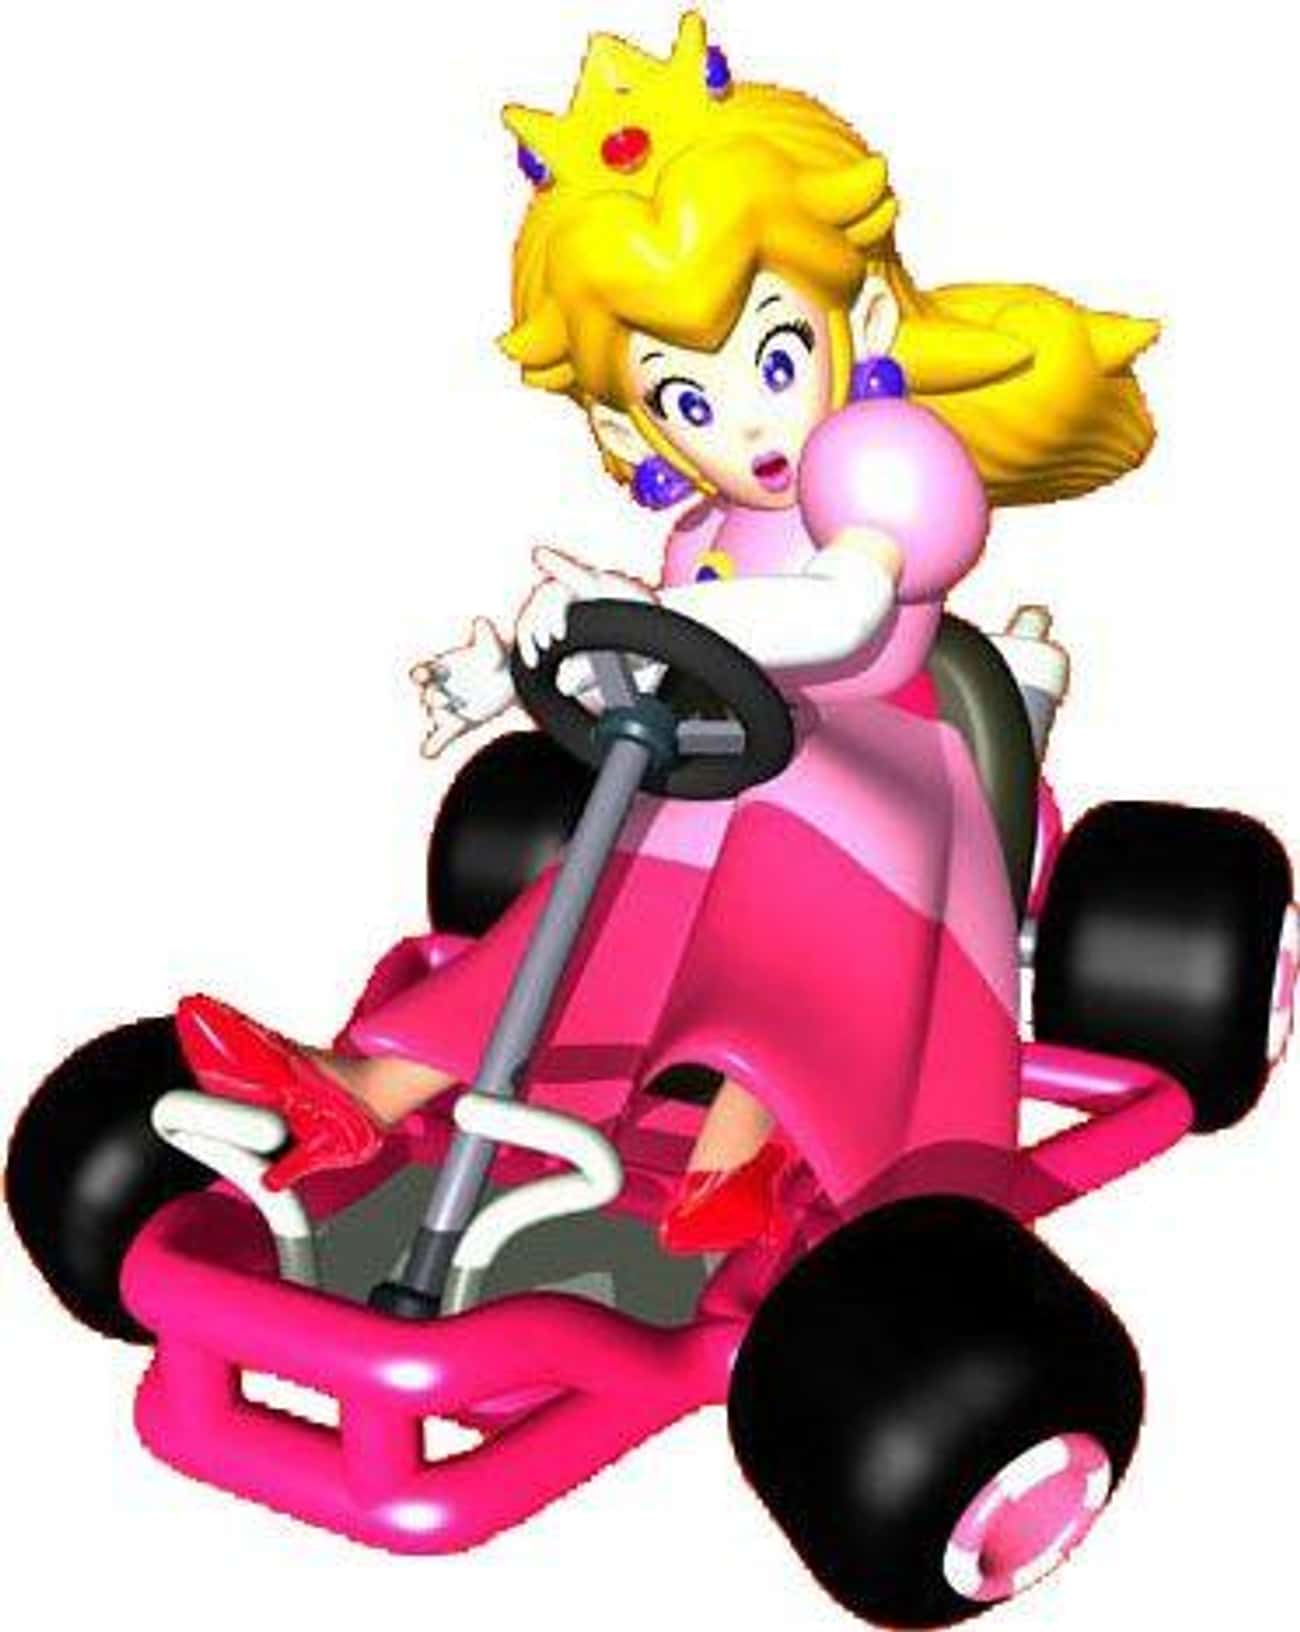 Princess Peach: Fast Out The G is listed (or ranked) 3 on the list Special Things Every Mario Kart 64 Character Does Better Than The Others